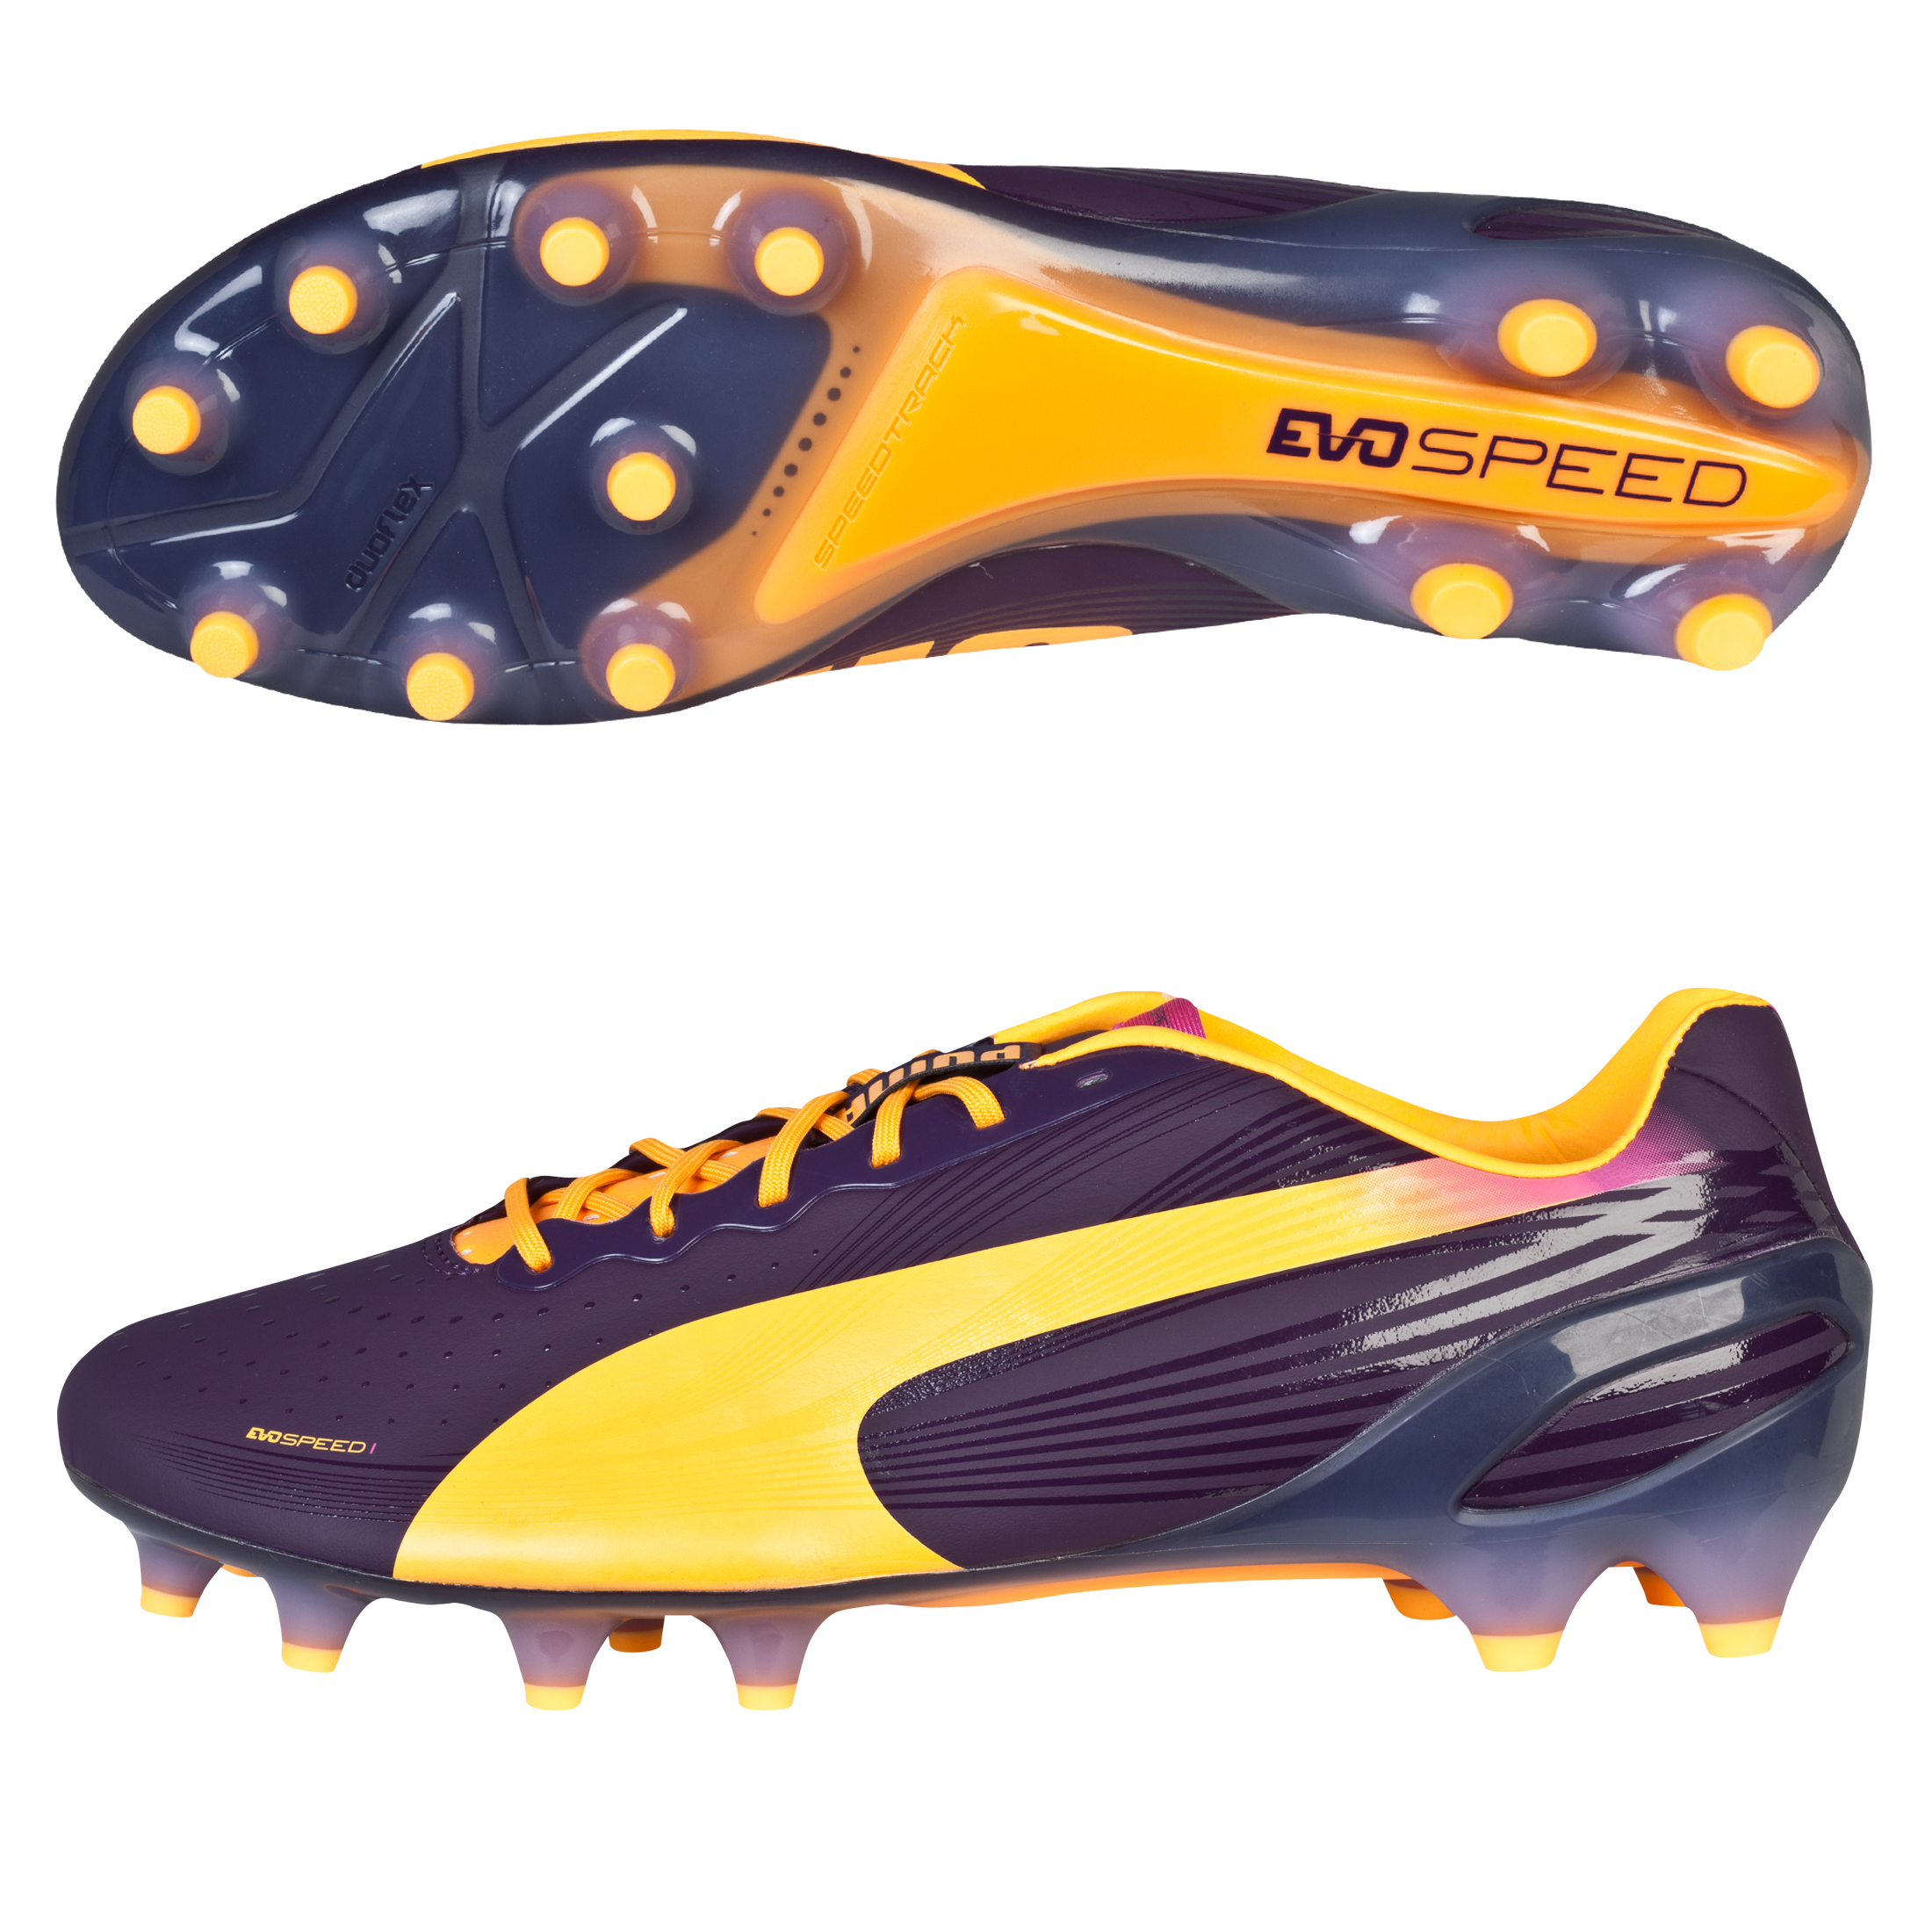 Puma evoSPEED 1.2 Firm Ground Football Boots Blue